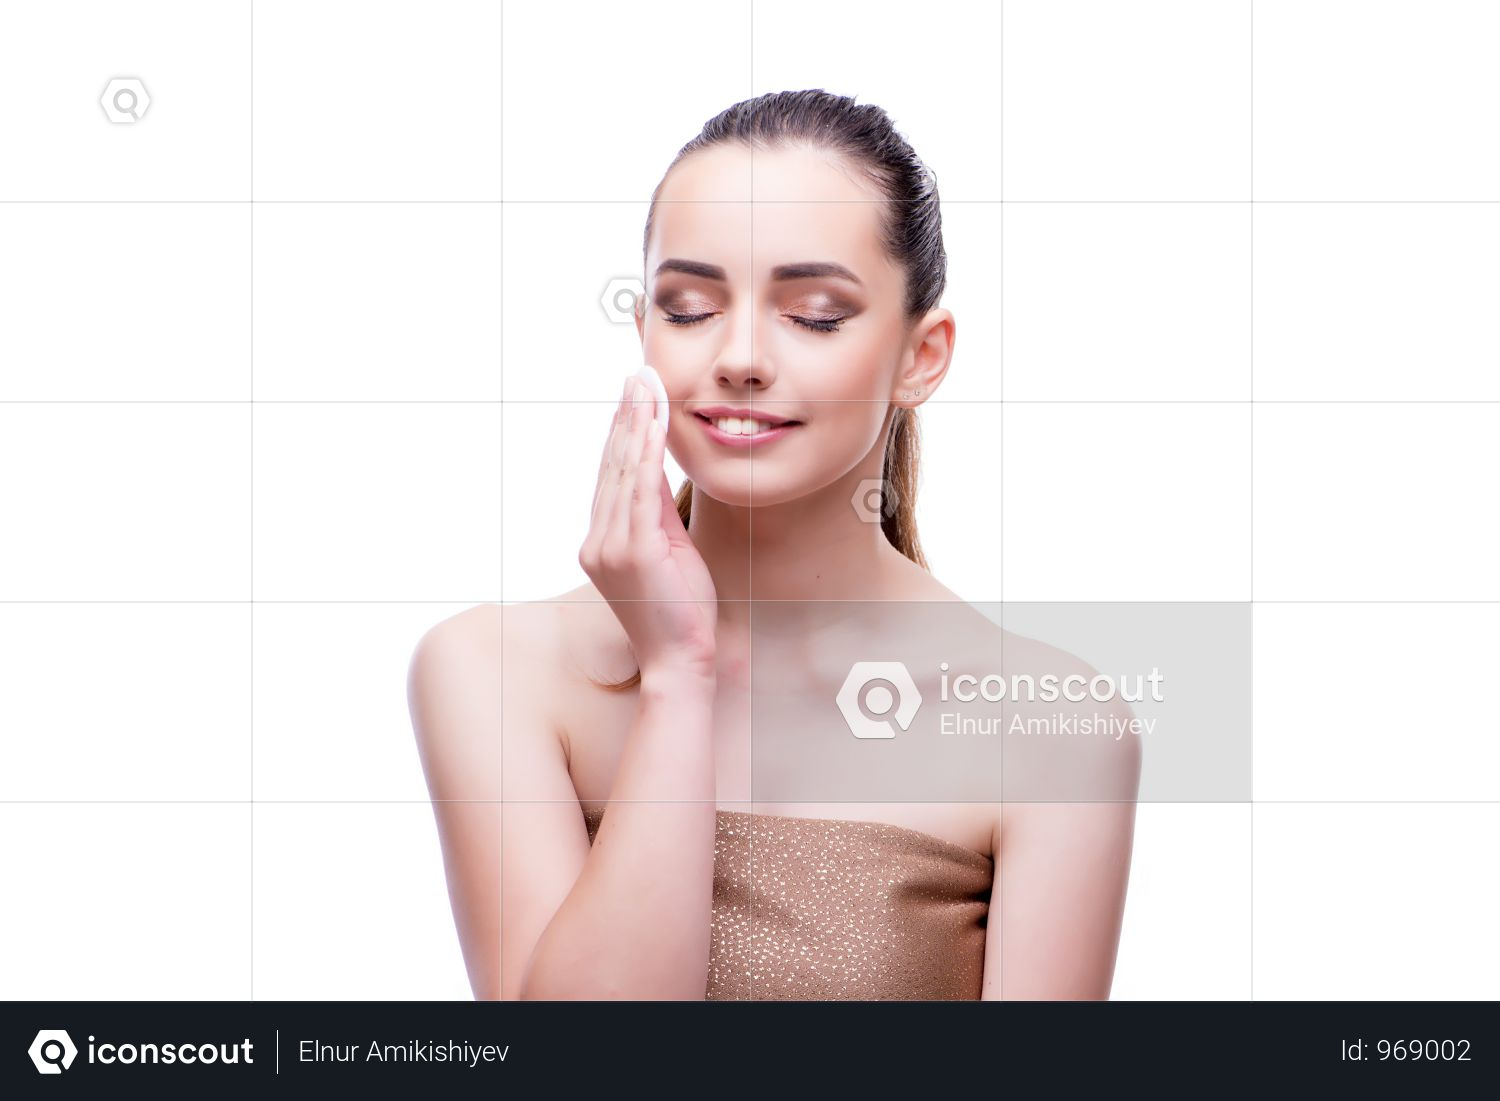 Woman In Beauty Concept Applying Make Up Using Cosmetics Photo